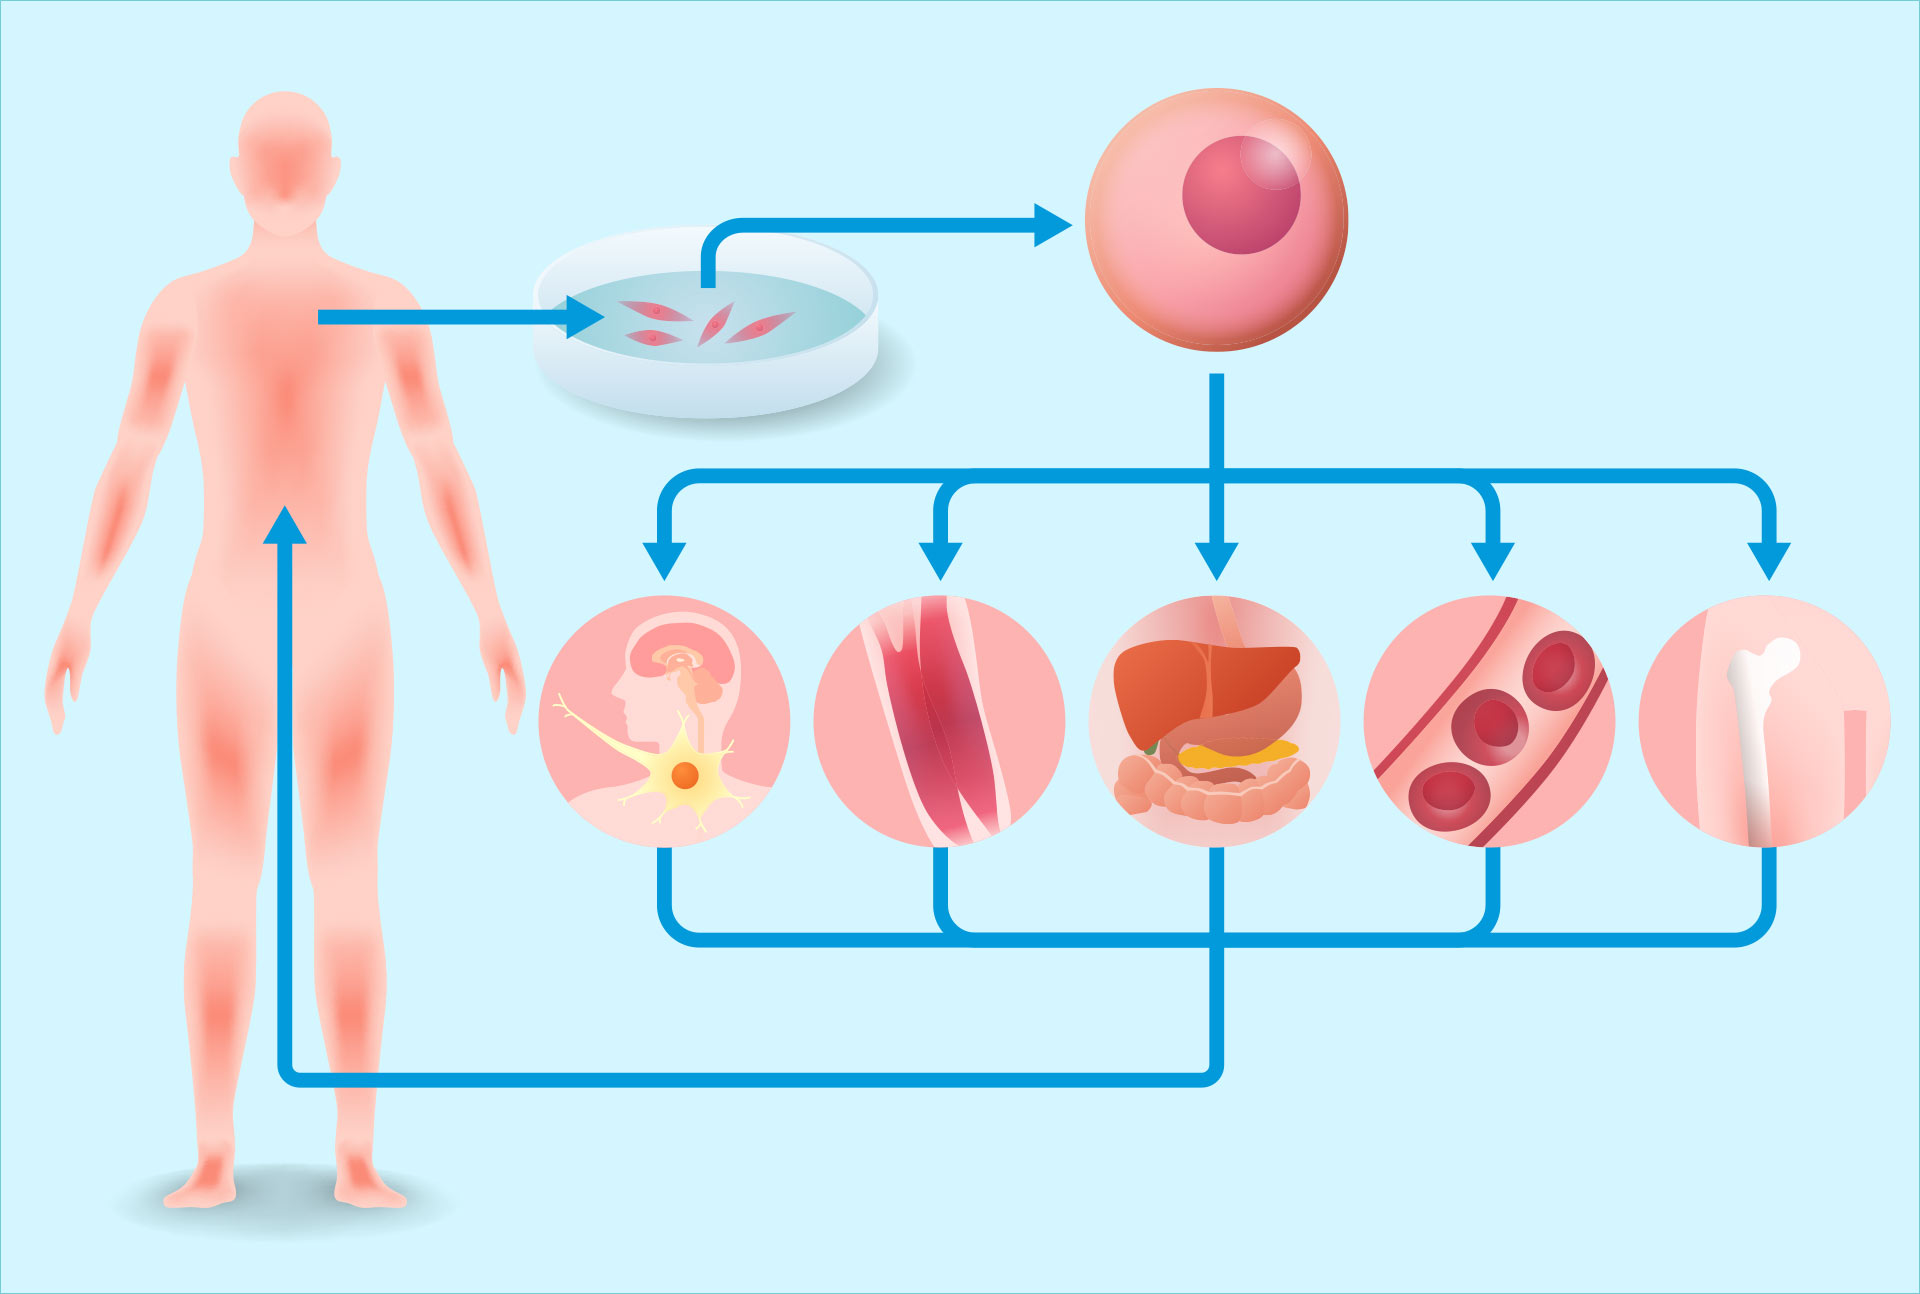 Stem cell therapy by Dr. Weiss